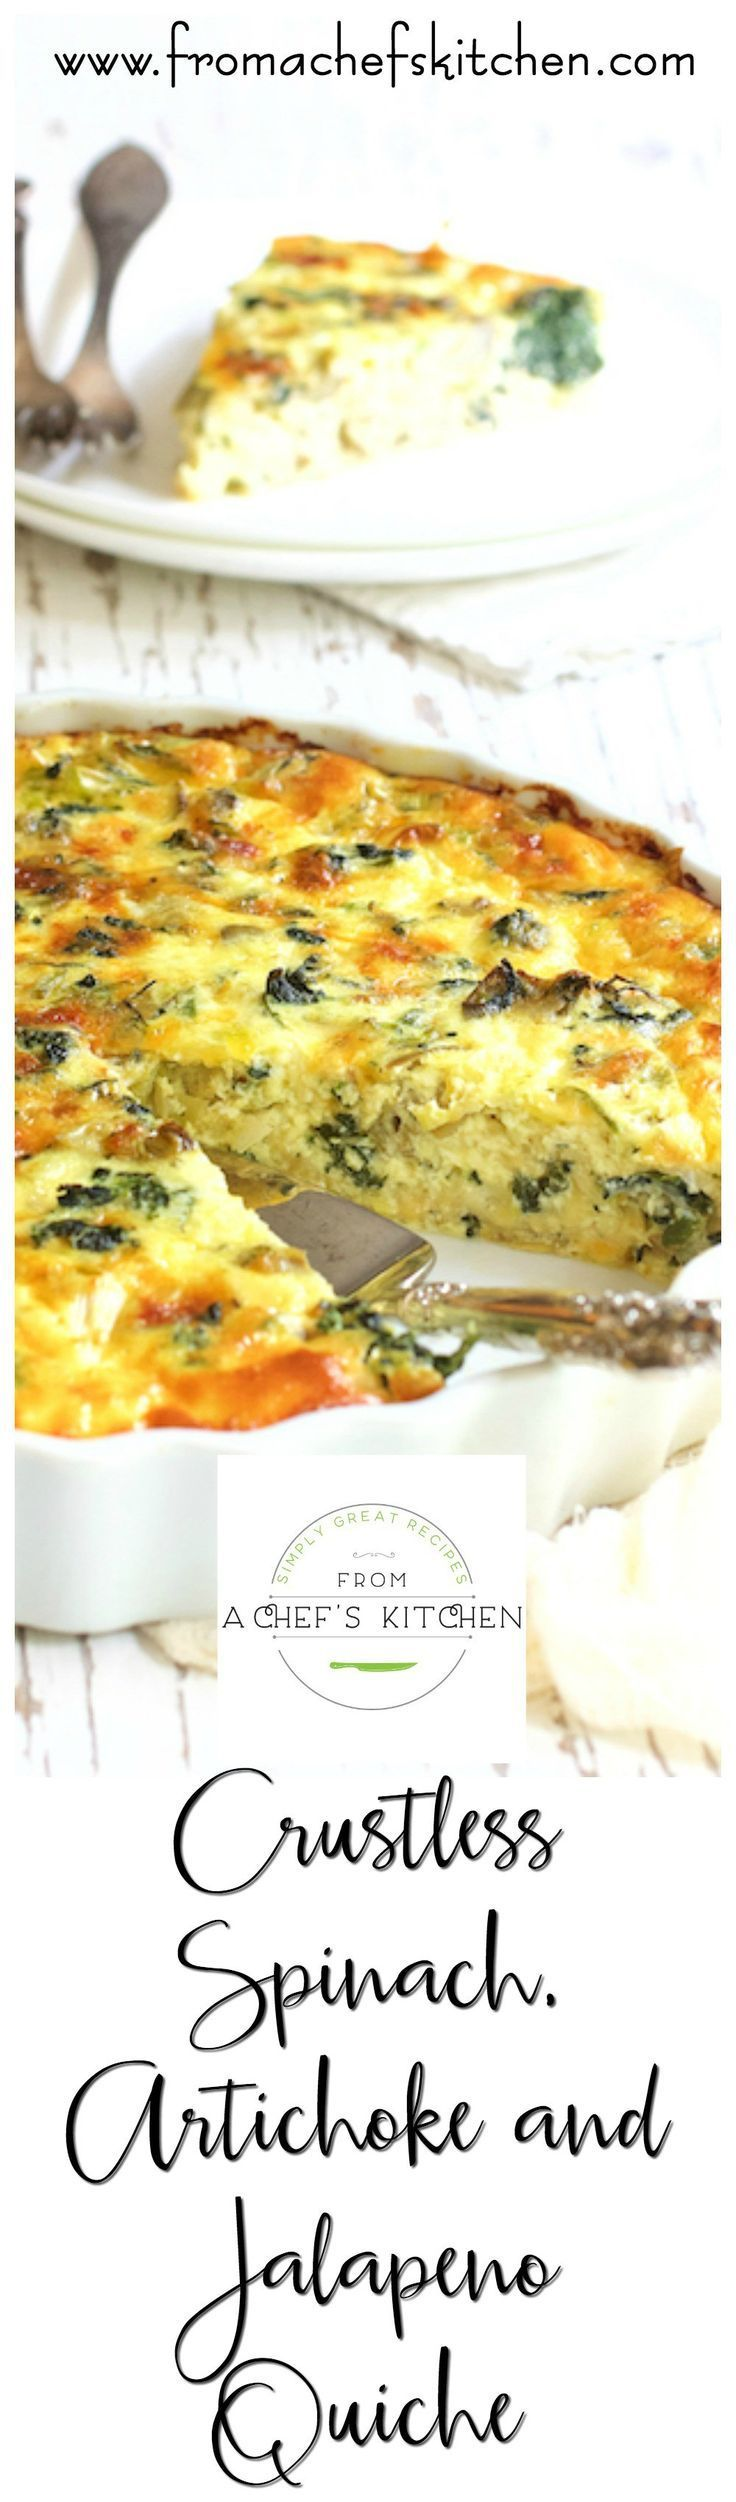 Crustless Spinach, Artichoke and Jalapeno Quiche is quiche with a kick!